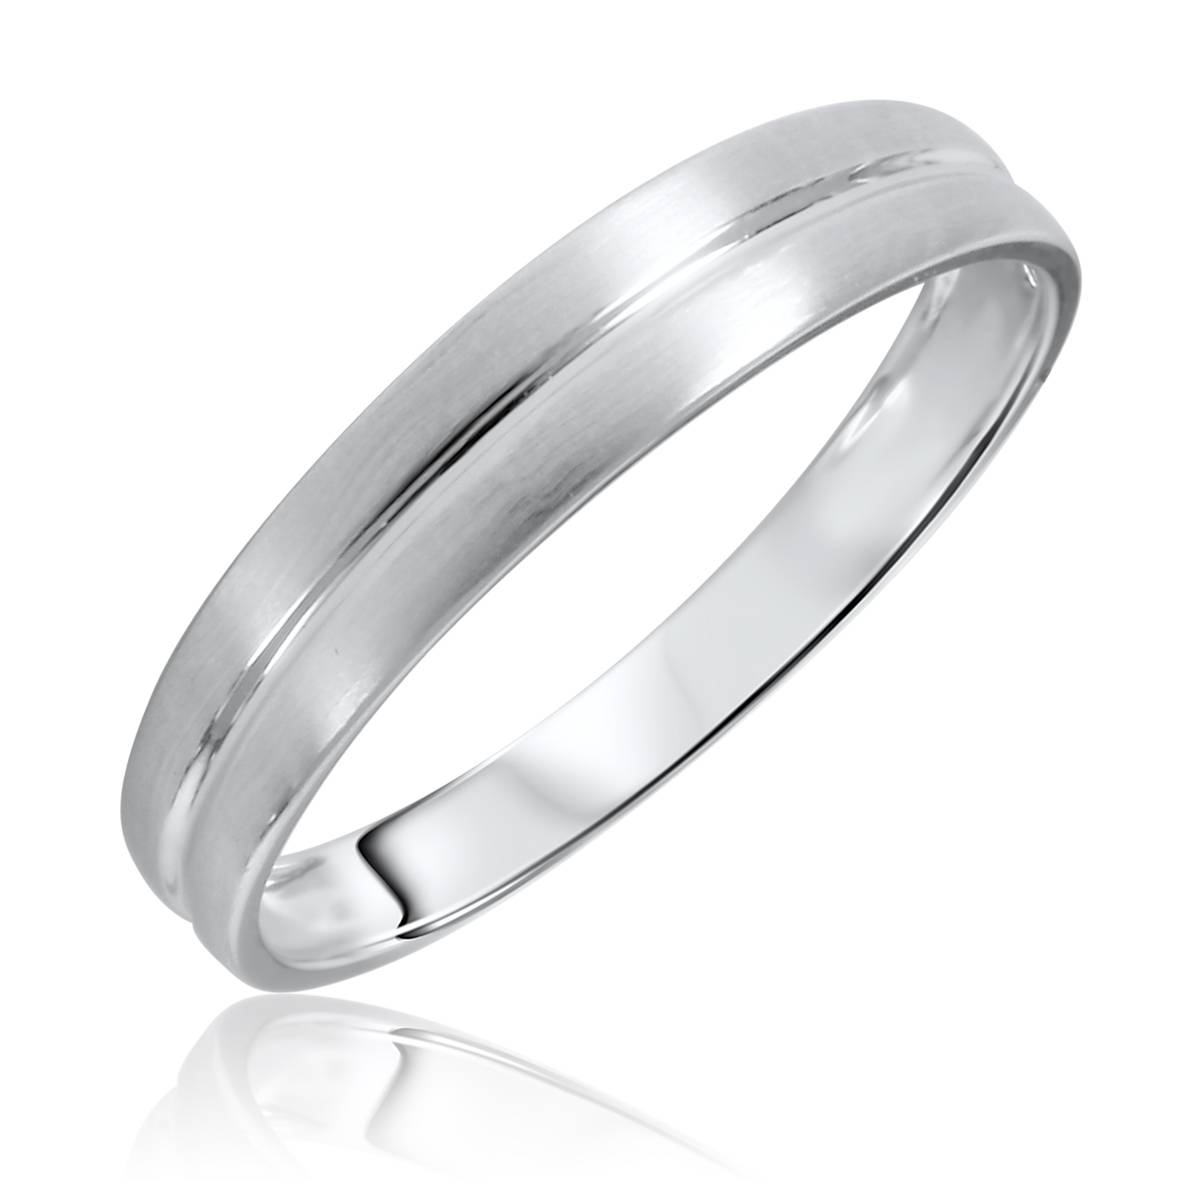 No Diamondstraditional Mens Wedding Band 14k White Gold For White Gold Male Wedding Bands (View 2 of 15)